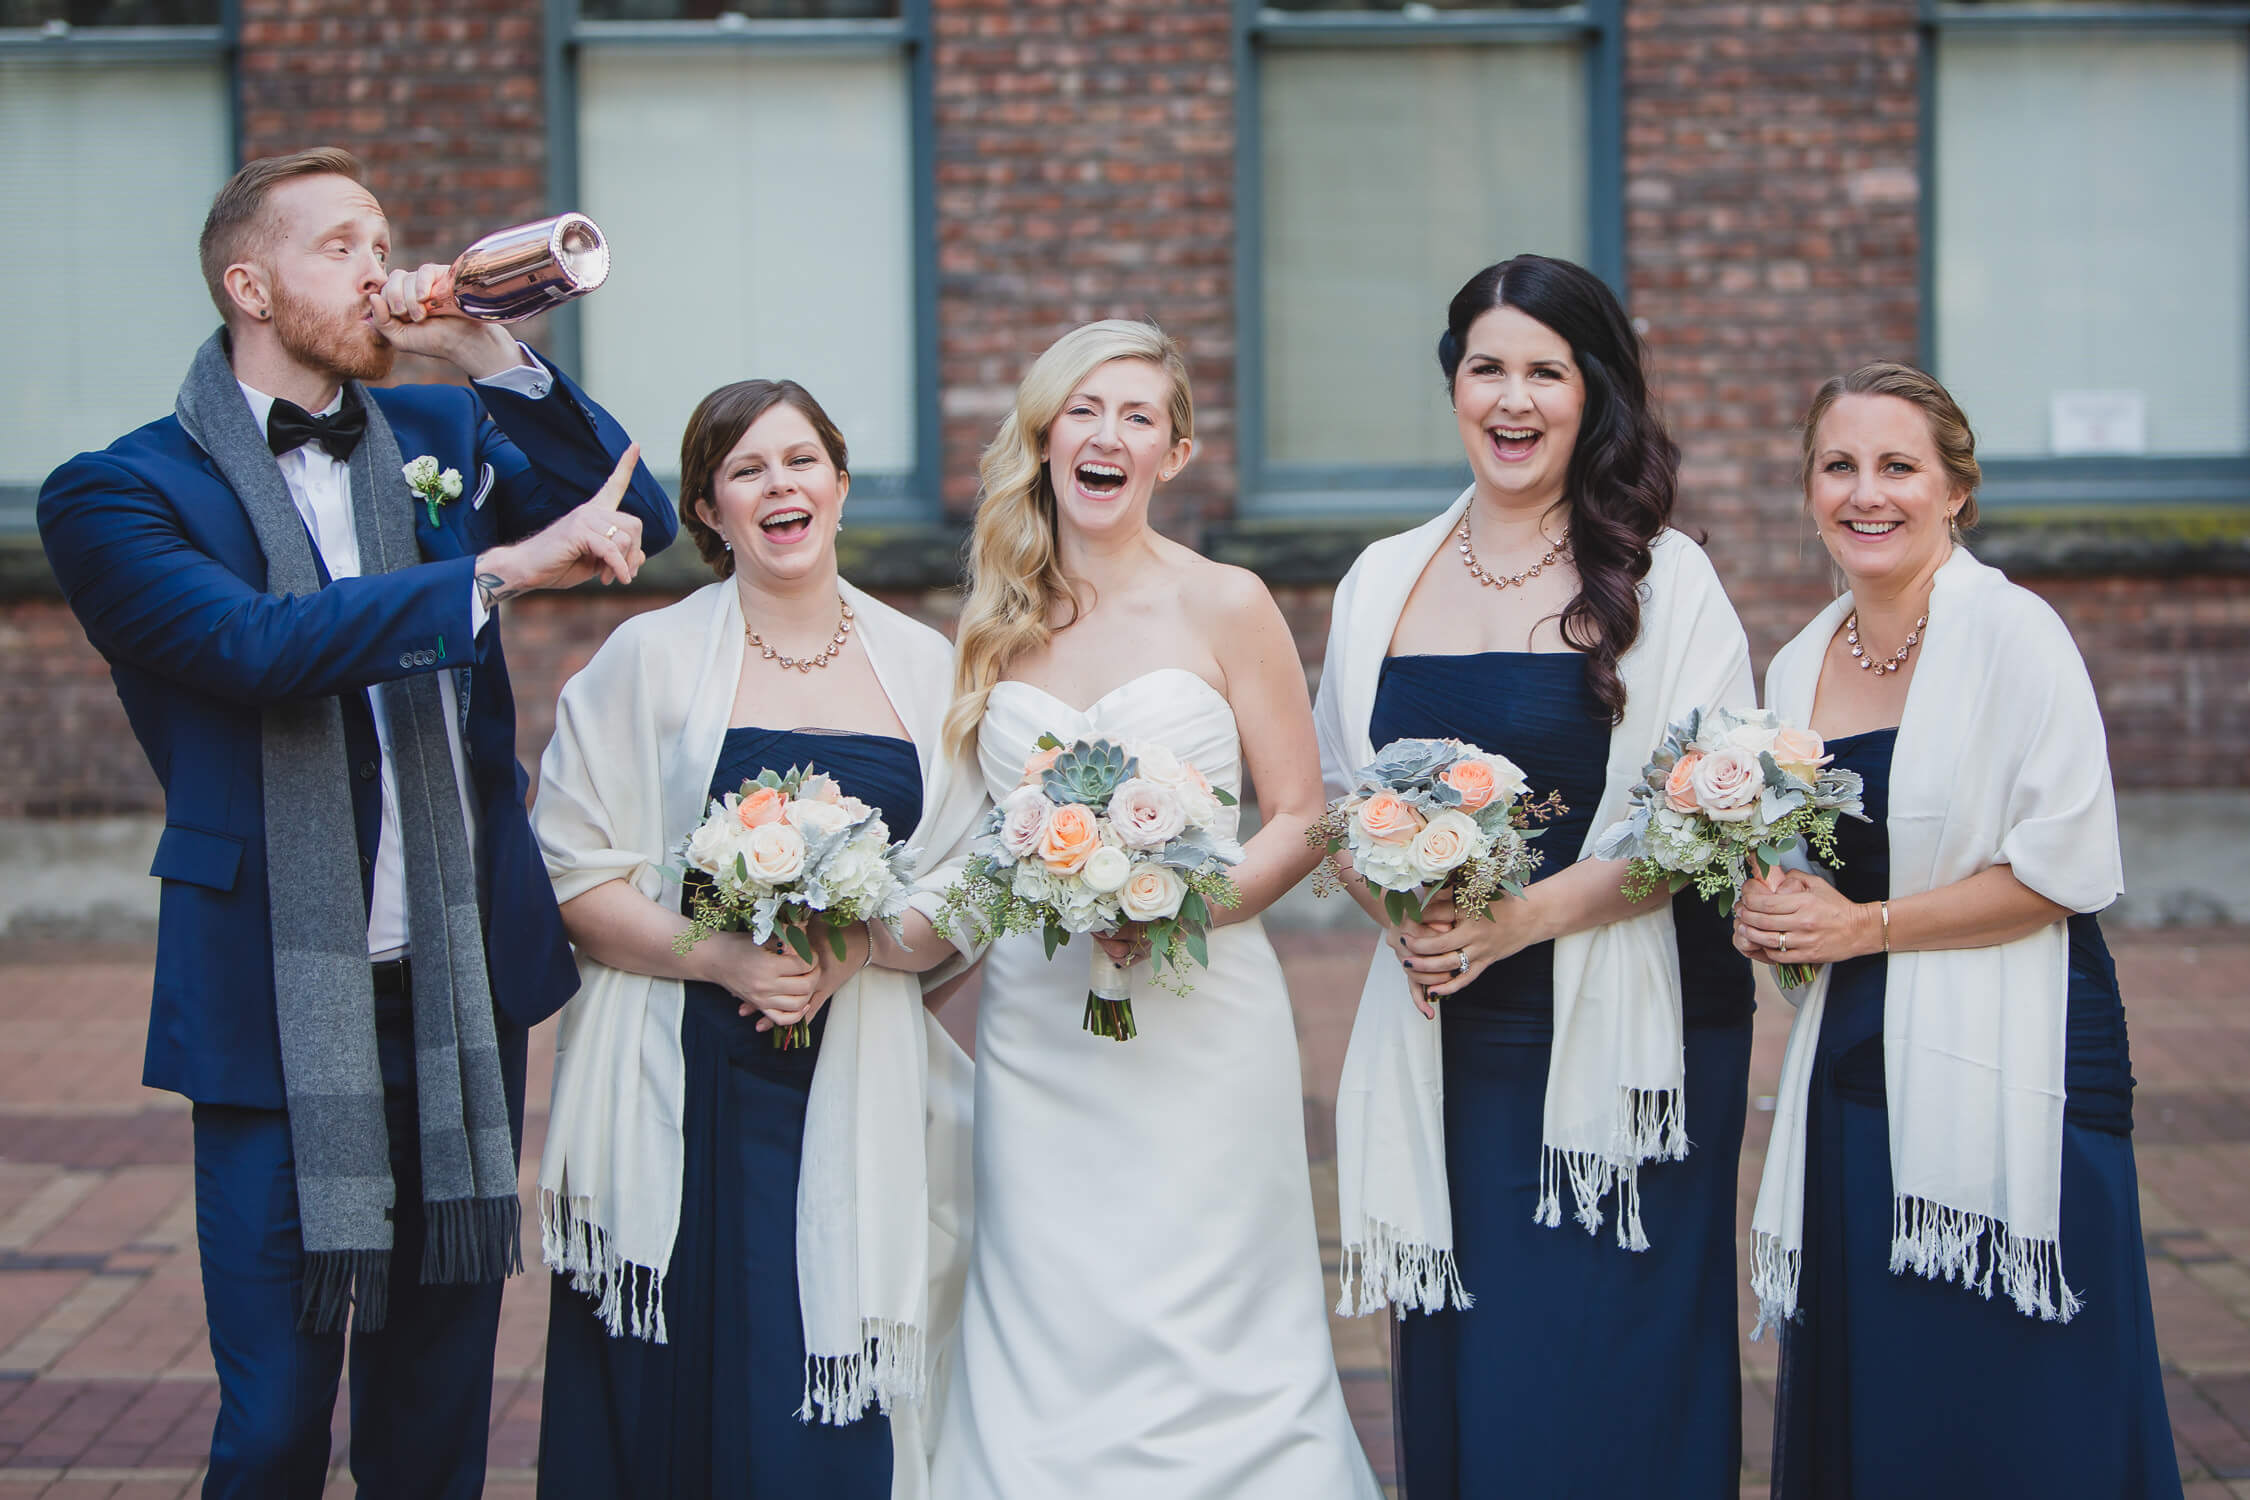 brix-vancouver-wedding-bridesmain-with-champagne-1